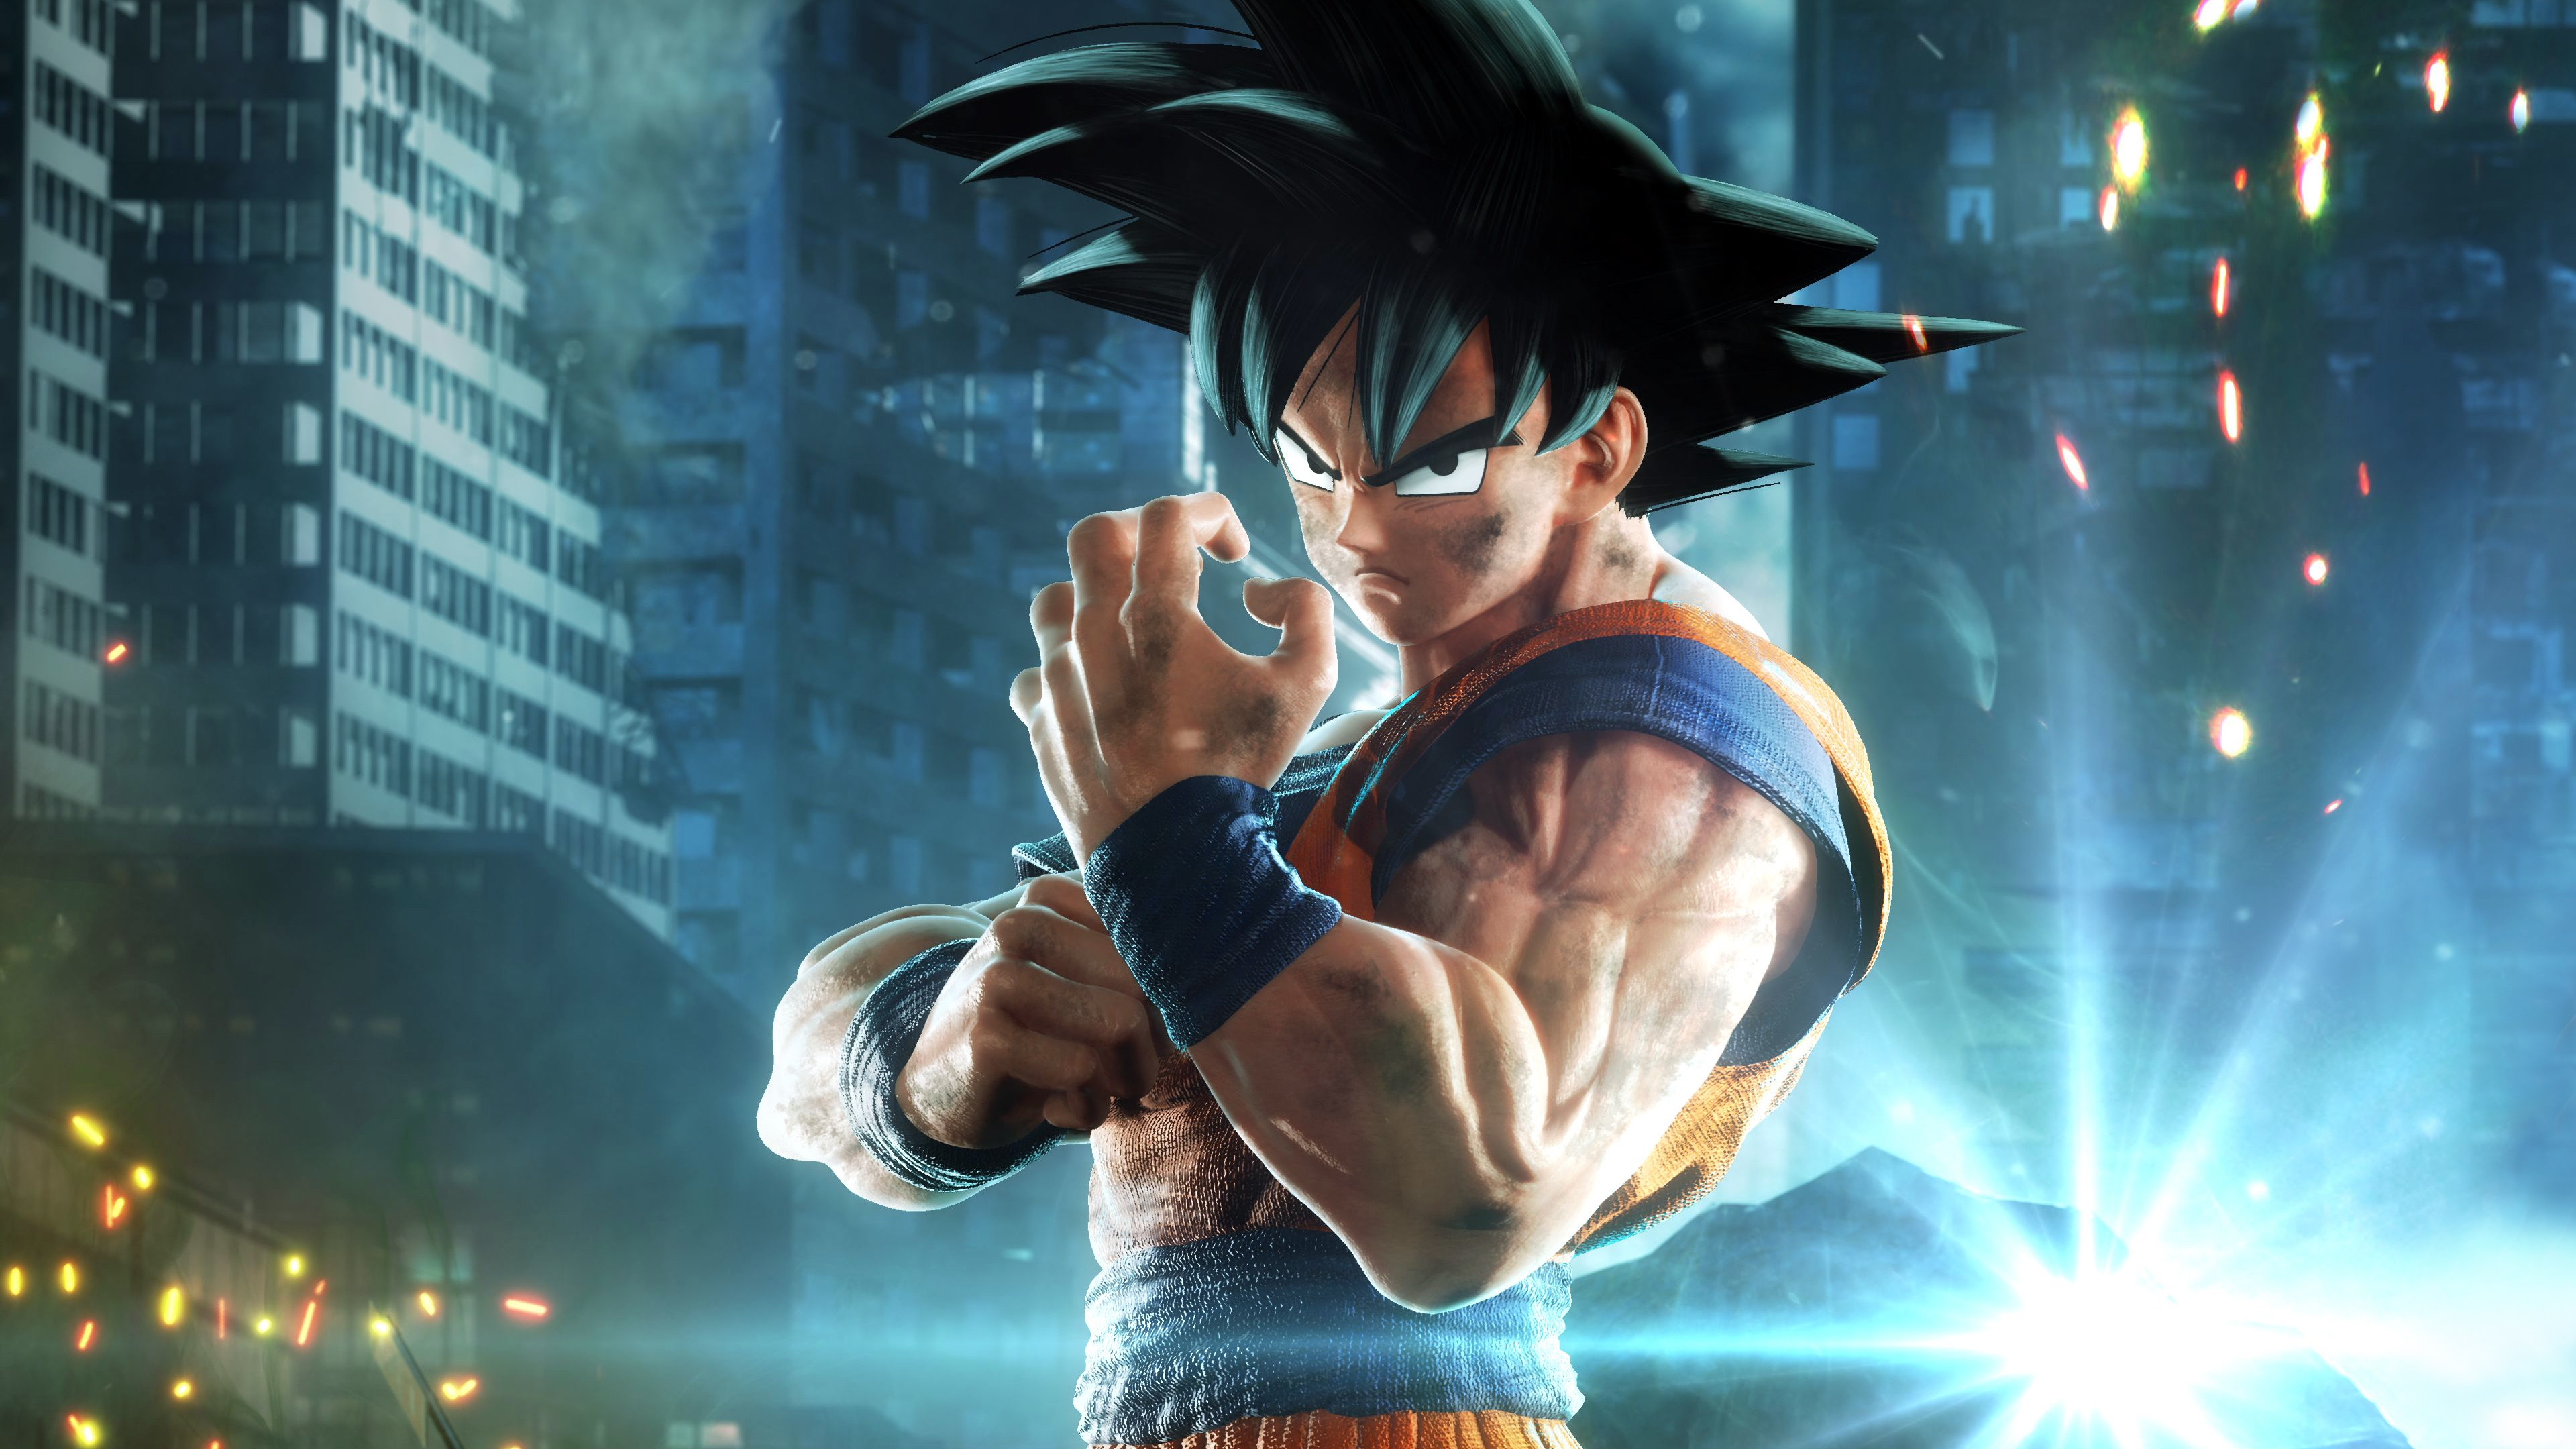 Fondos de pantalla Goku de Dragon Ball en Jump Force